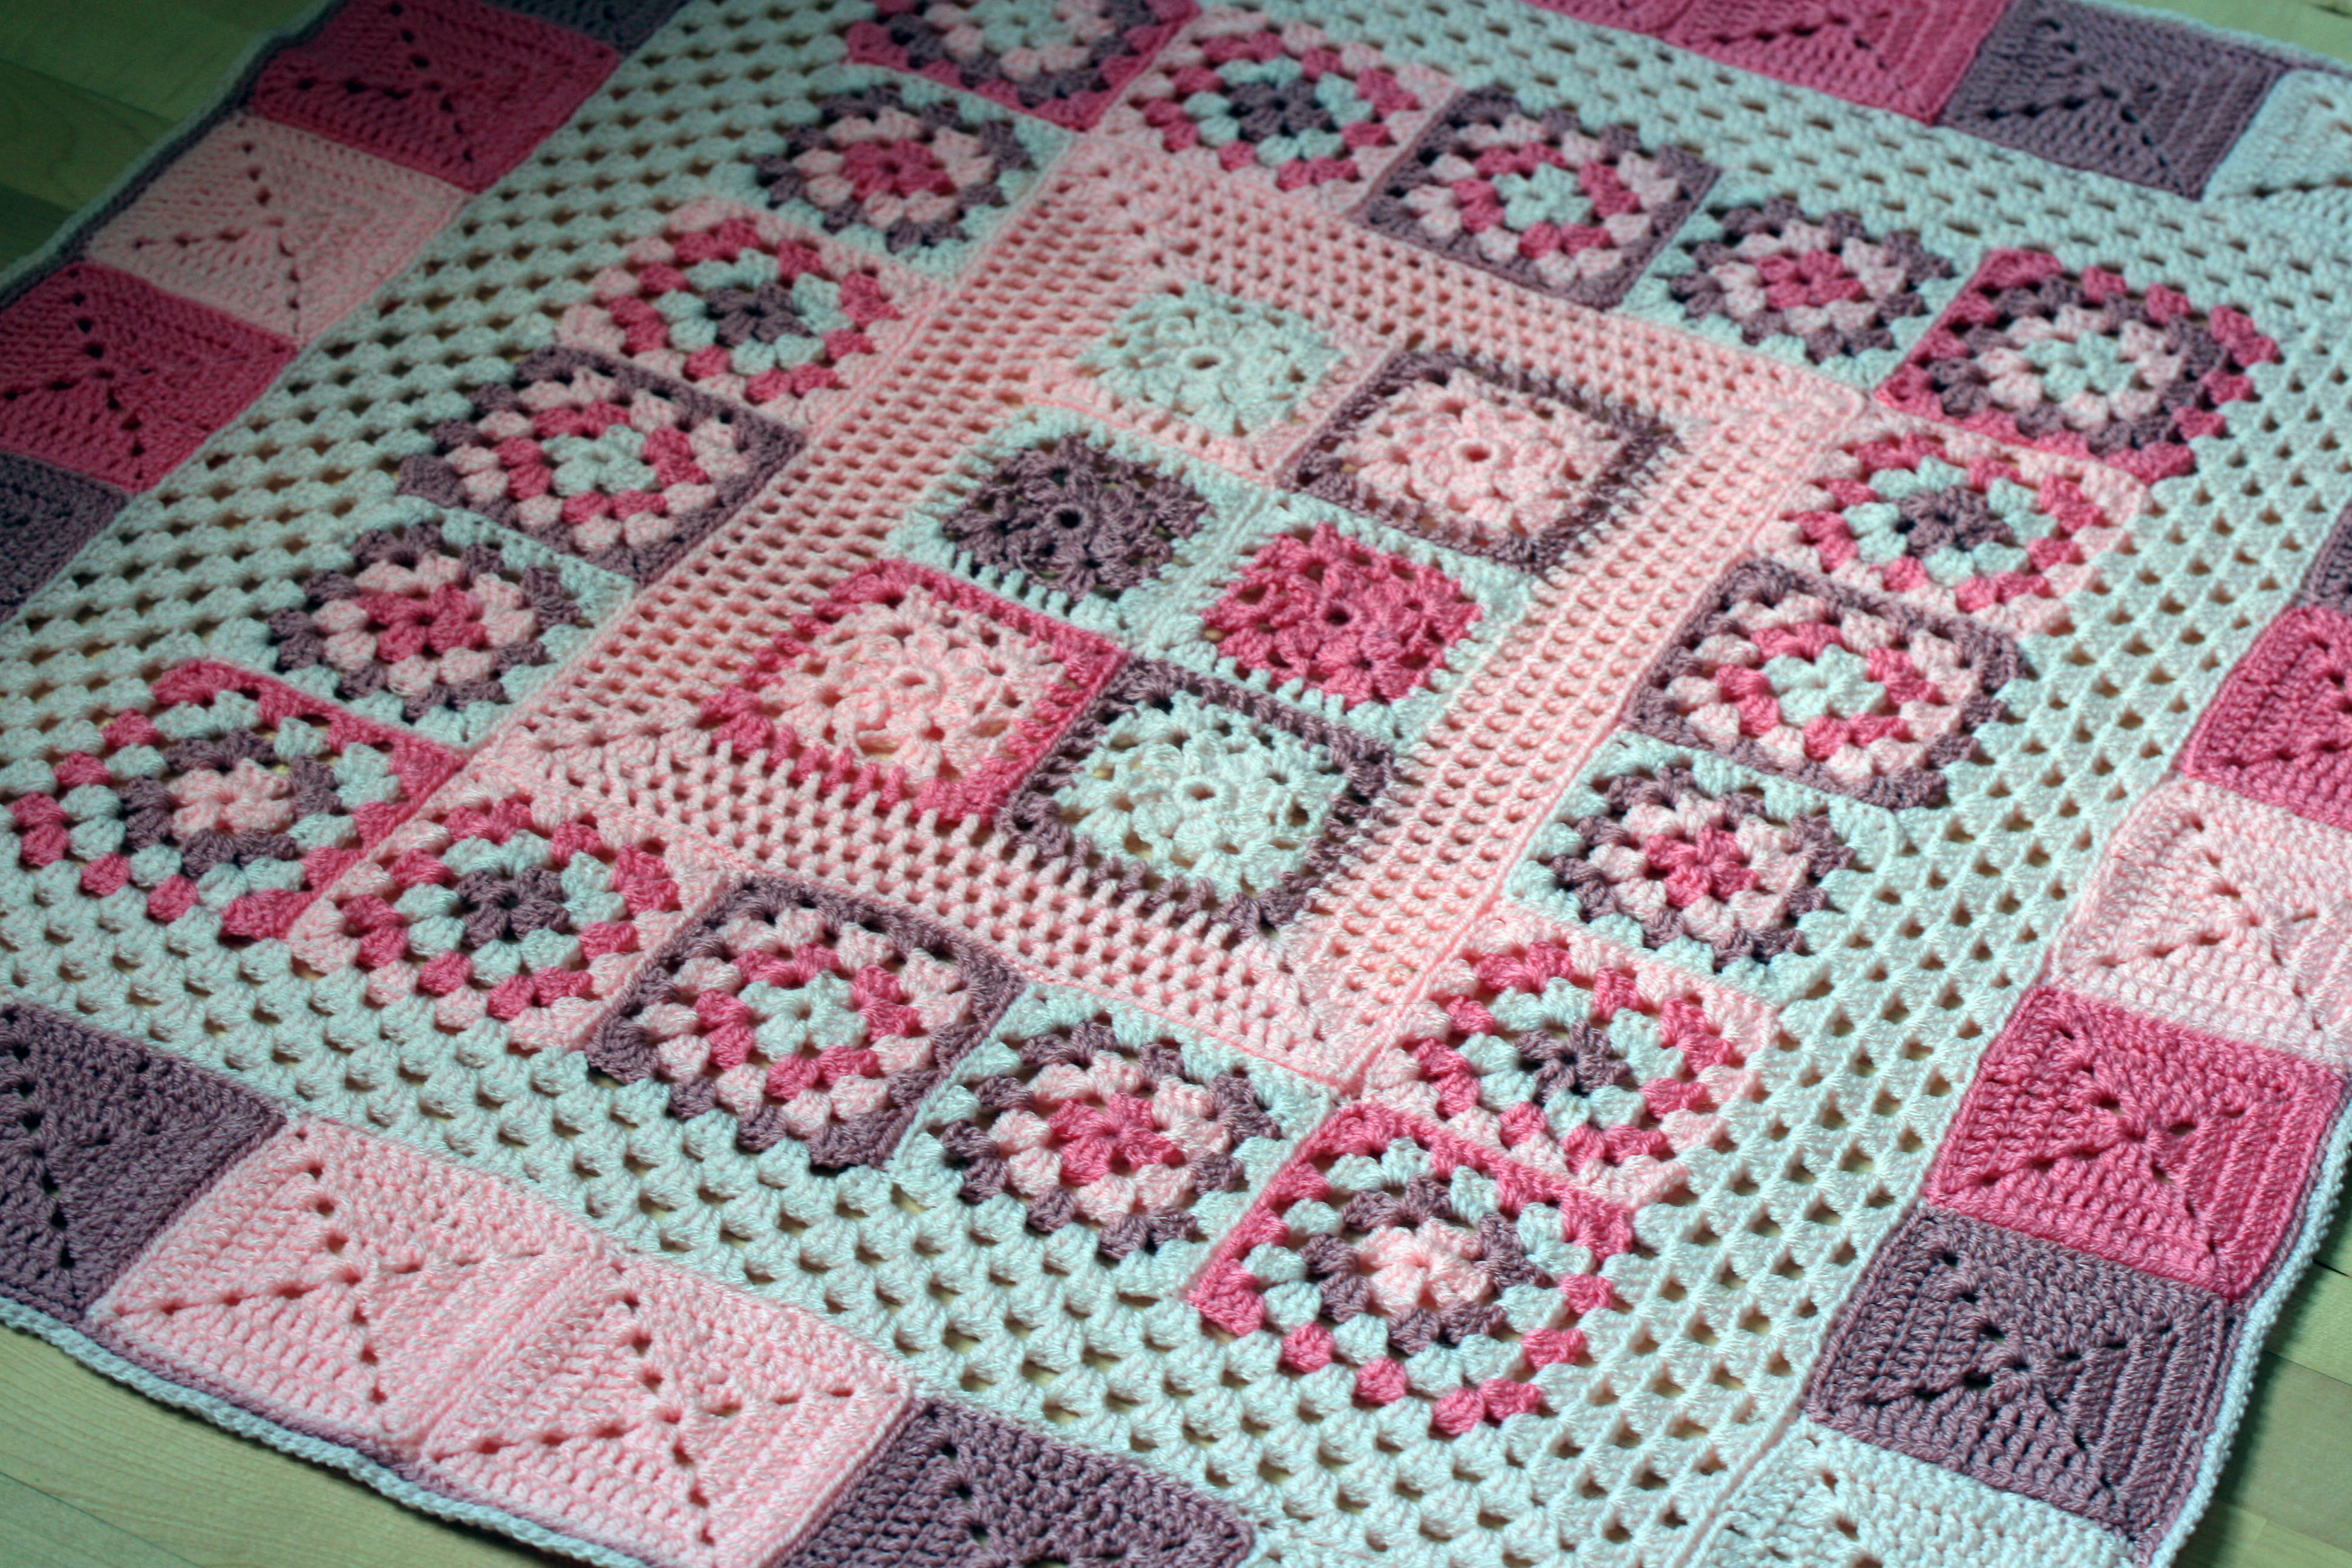 Crochet Quilts Awesome Crochet Baby Blanket Pretty In Pink Of Unique 45 Pics Crochet Quilts